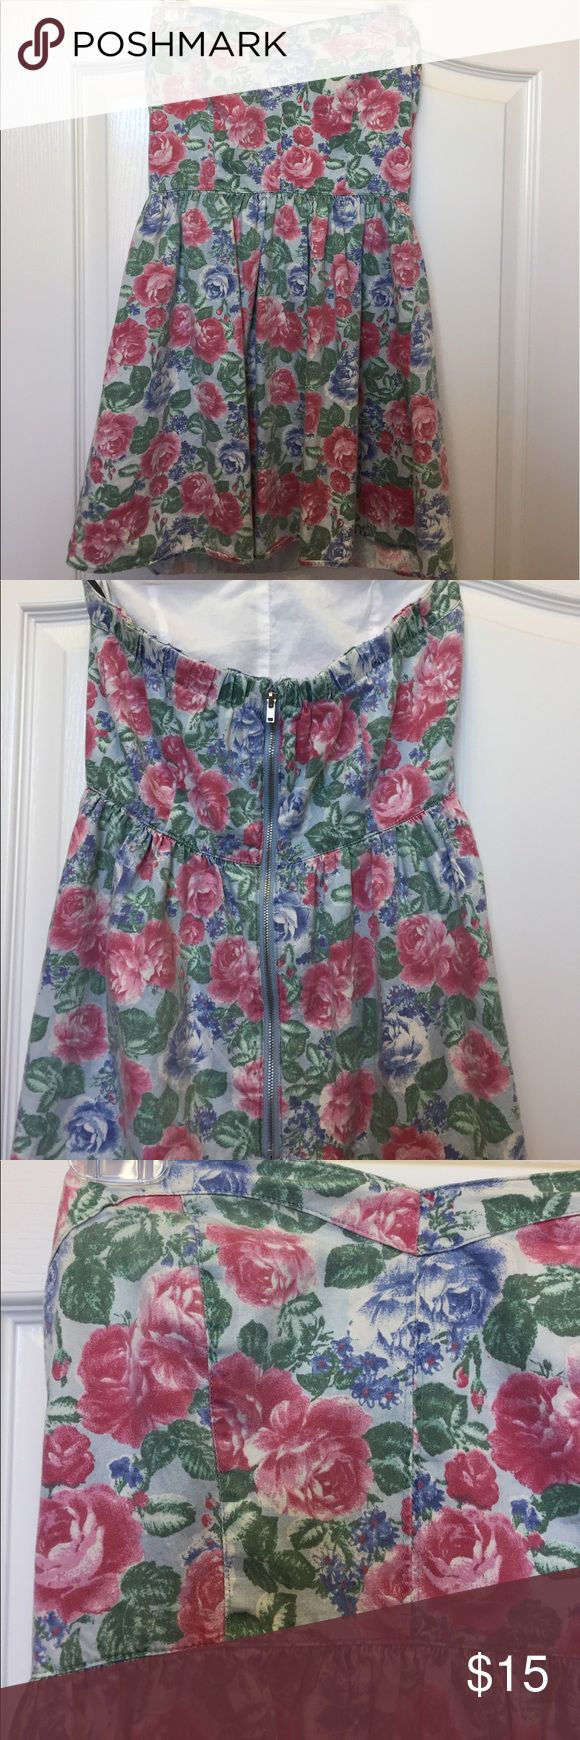 "Strapless Floral Mini Dress Forever 21 Floral Mini Dress - Size M. I think it would better fit a SMALL. Worn a couple times, good condition. **disclaimer: this dress is SHORT. I am 5'8"" so I suggest someone with a shorter build would have better luck with this dress. Forever 21 Dresses Mini"